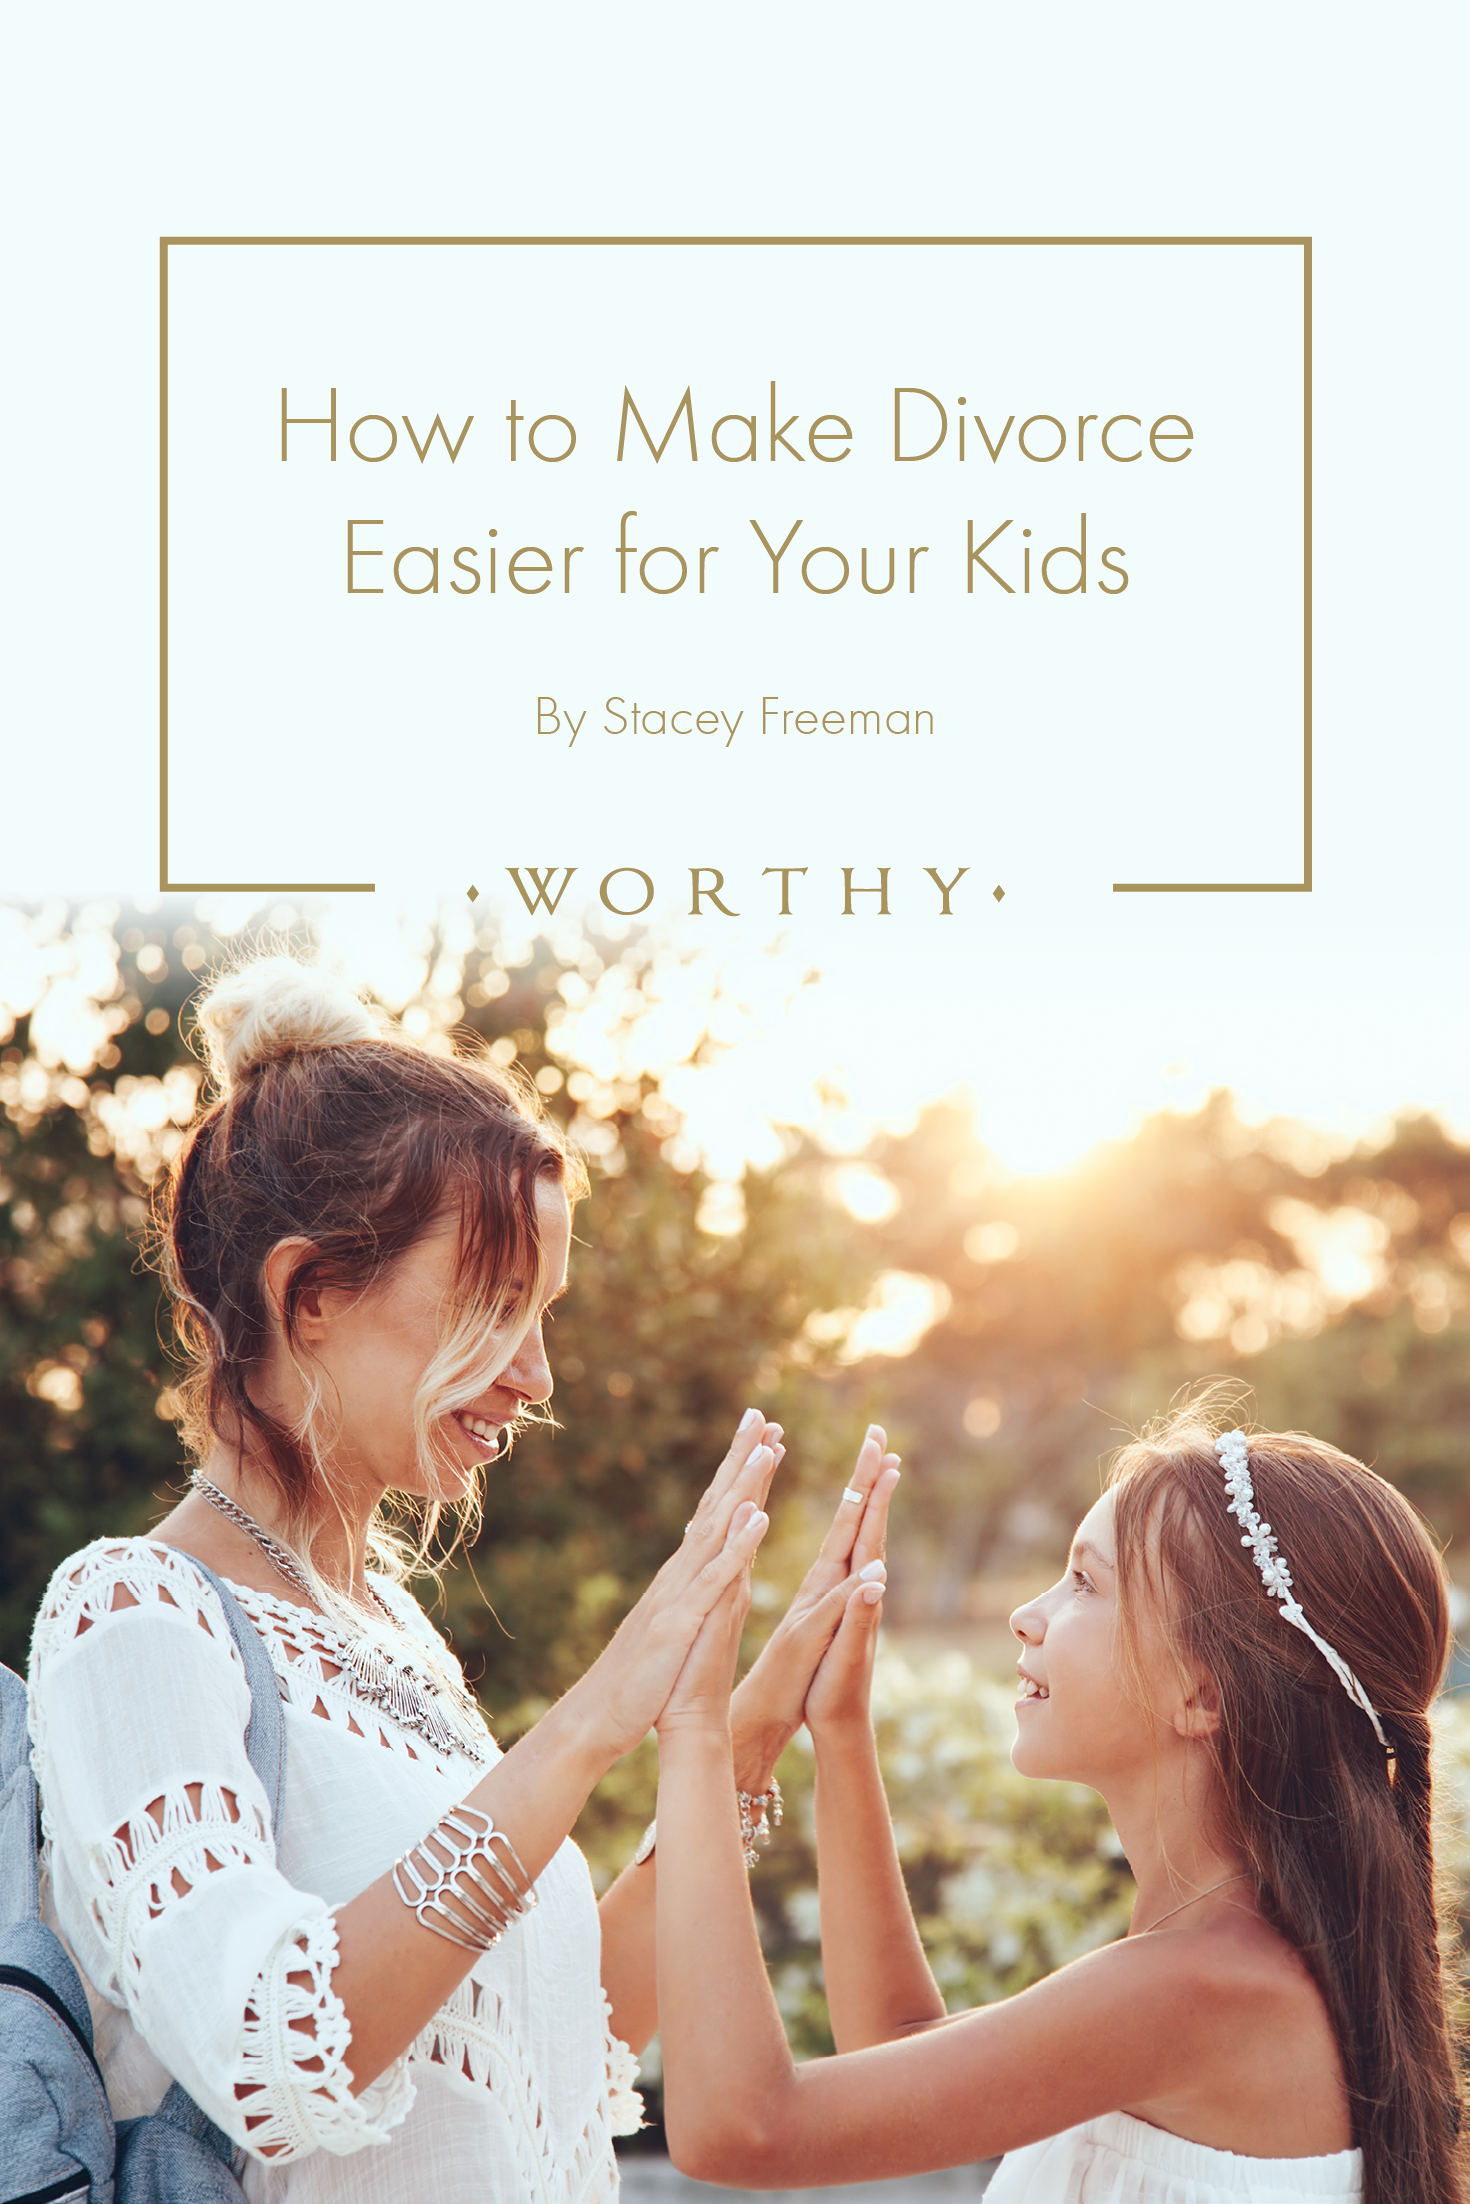 How To Make Divorce Easier For Your Kids